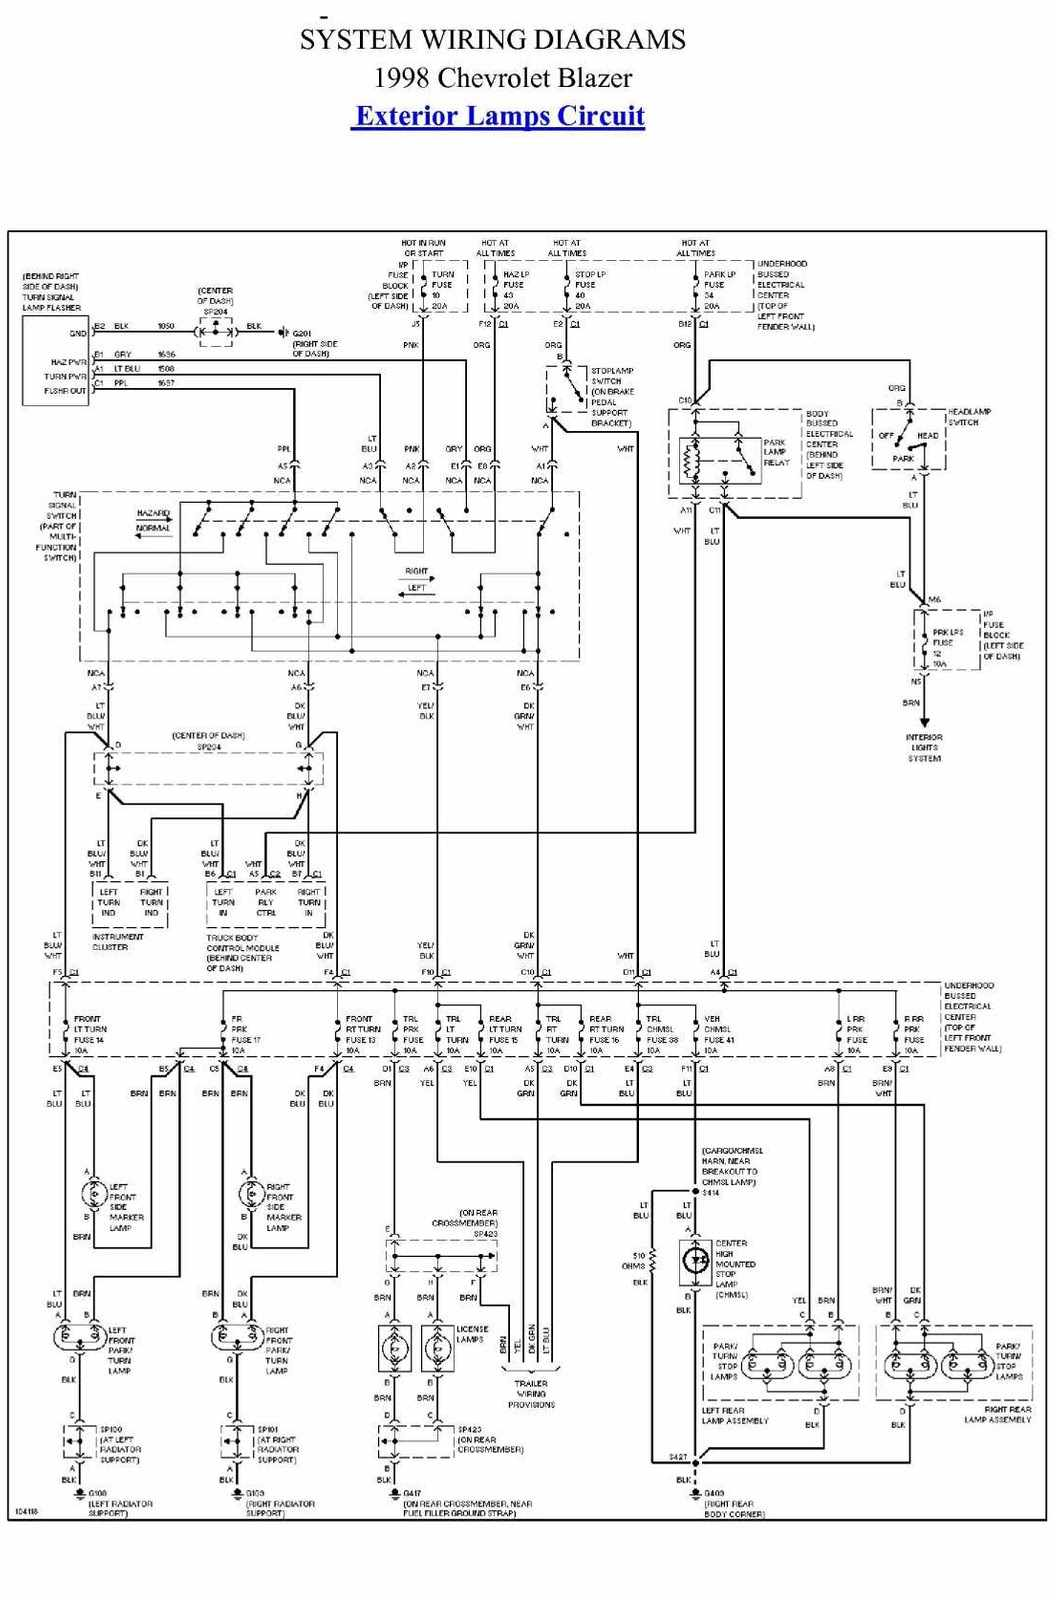 Blazer Wiring Diagram Will Be A Thing 98 S10 Gt Circuits Exterior Lampcircuit Of 1998 Chevrolet Ibanez Chevy